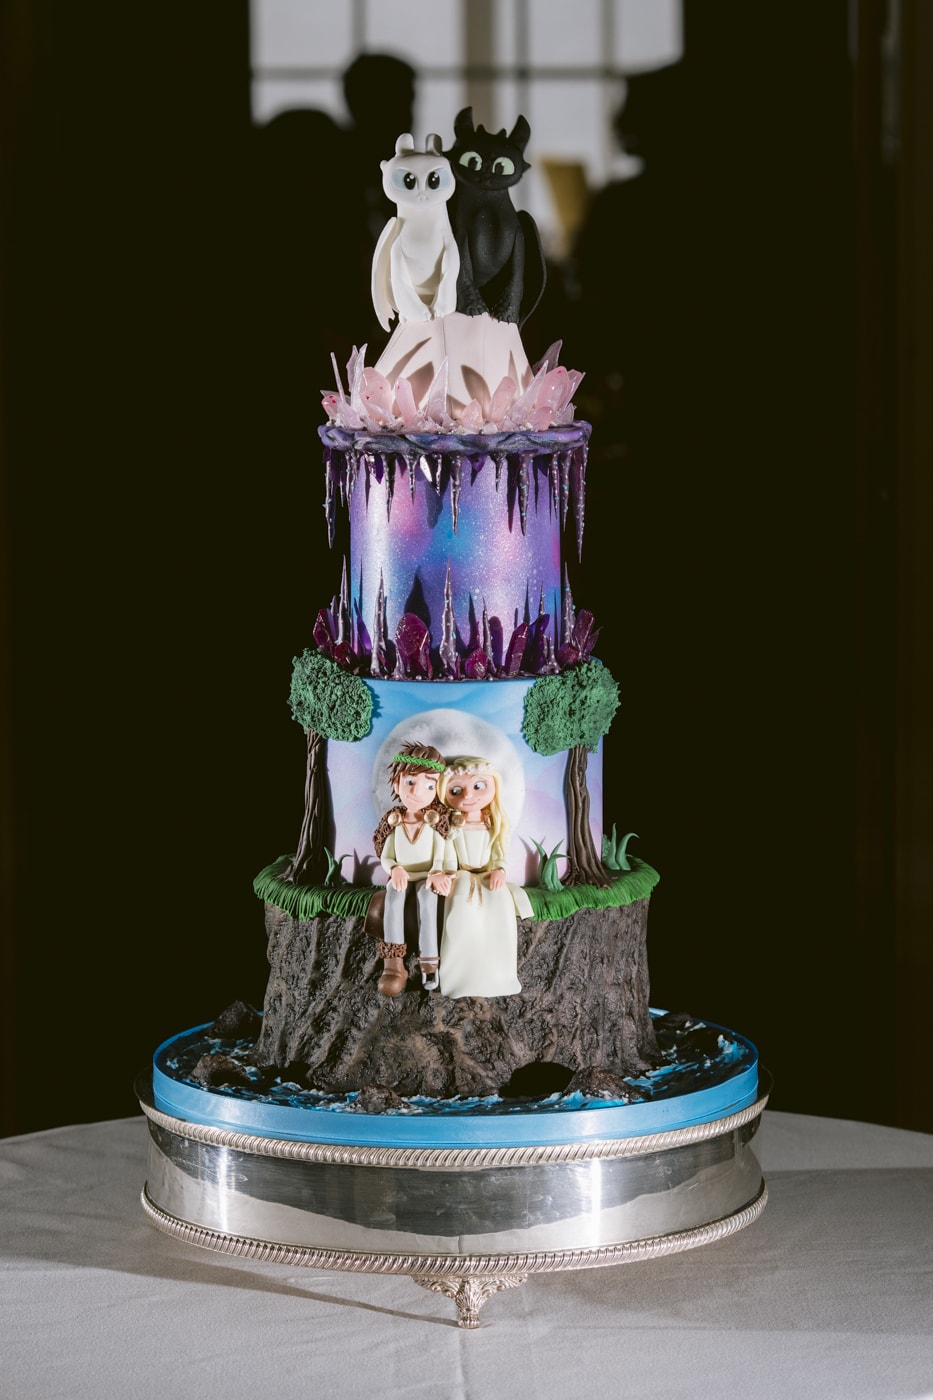 Bride and Groom Wedding Cake Portrait at Storrs Hall Wedding